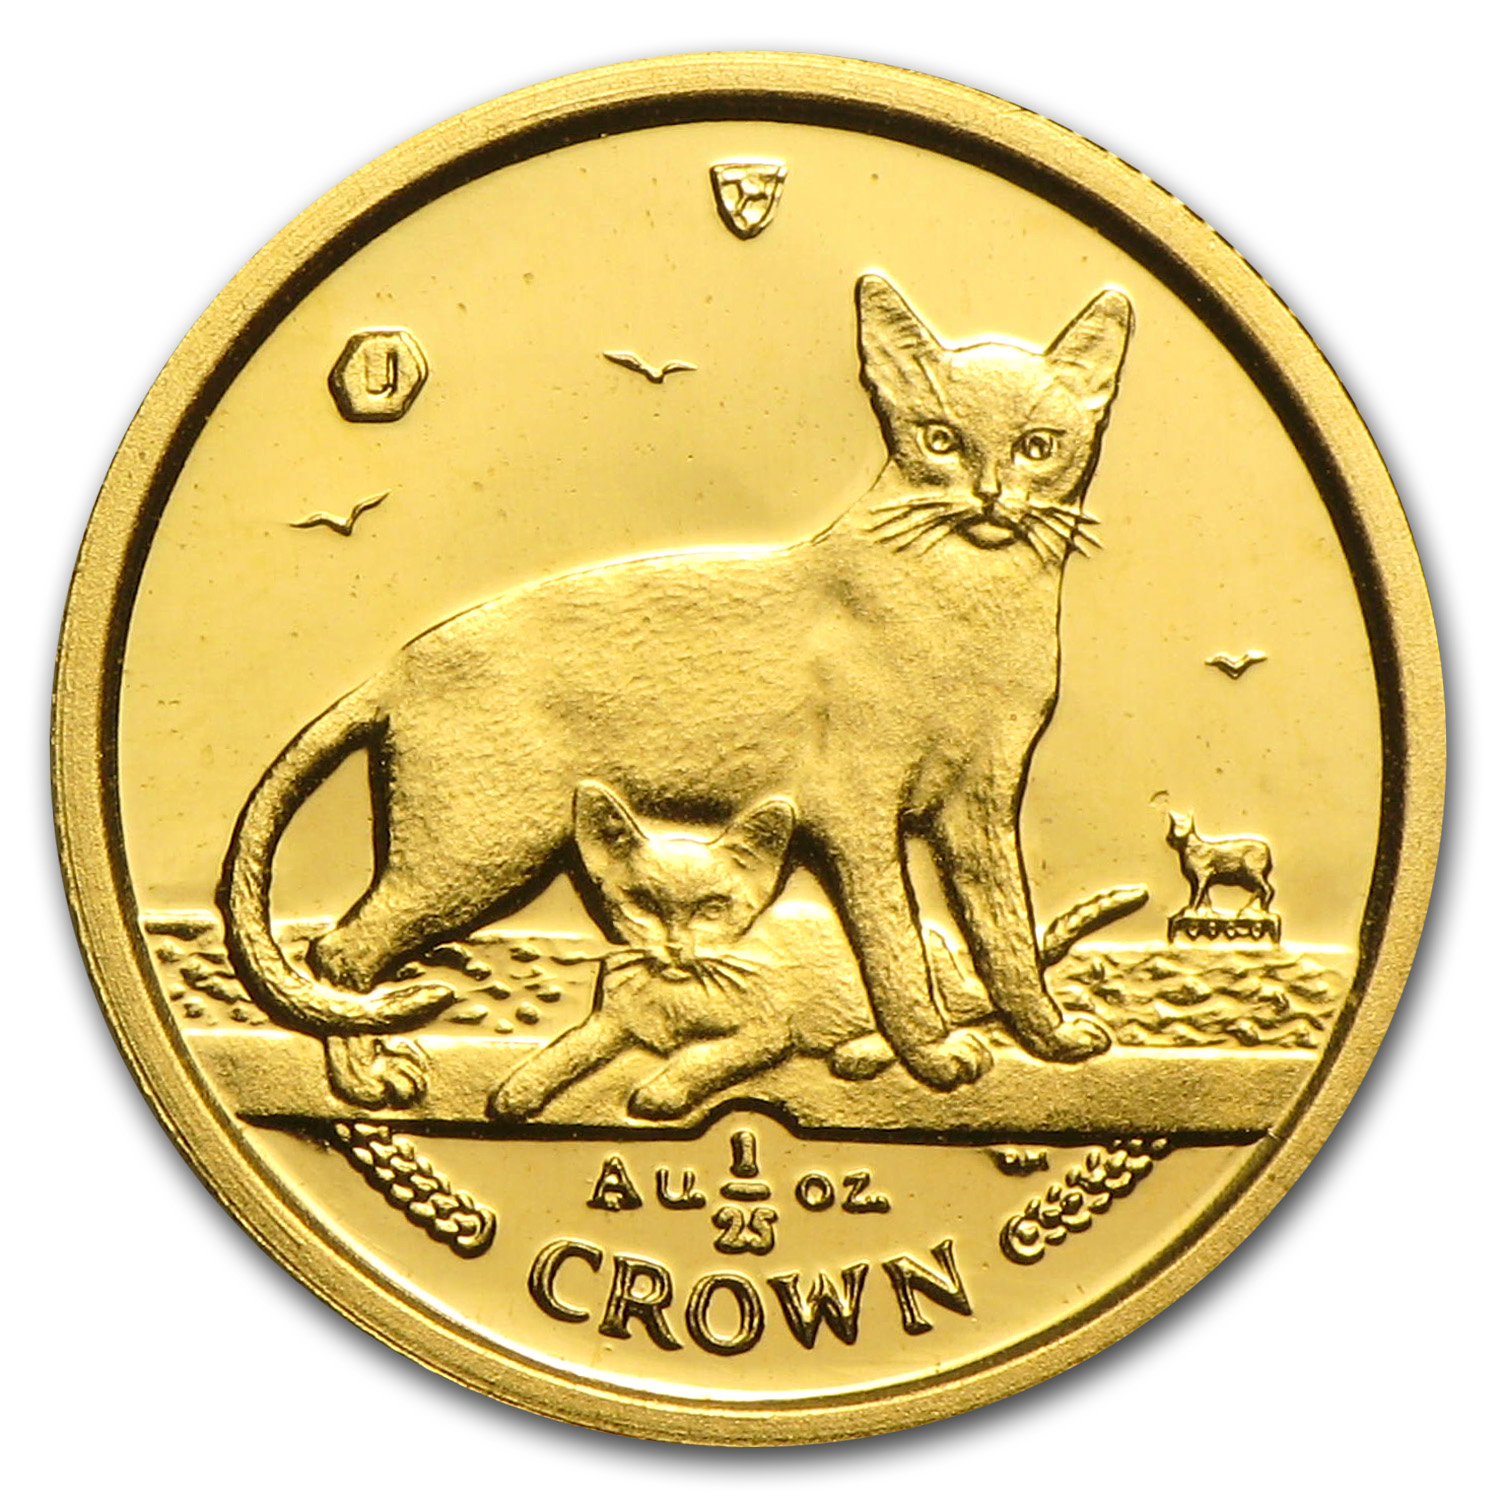 2010 Isle of Man 1/25 Crown Gold Abyssinian Cats BU